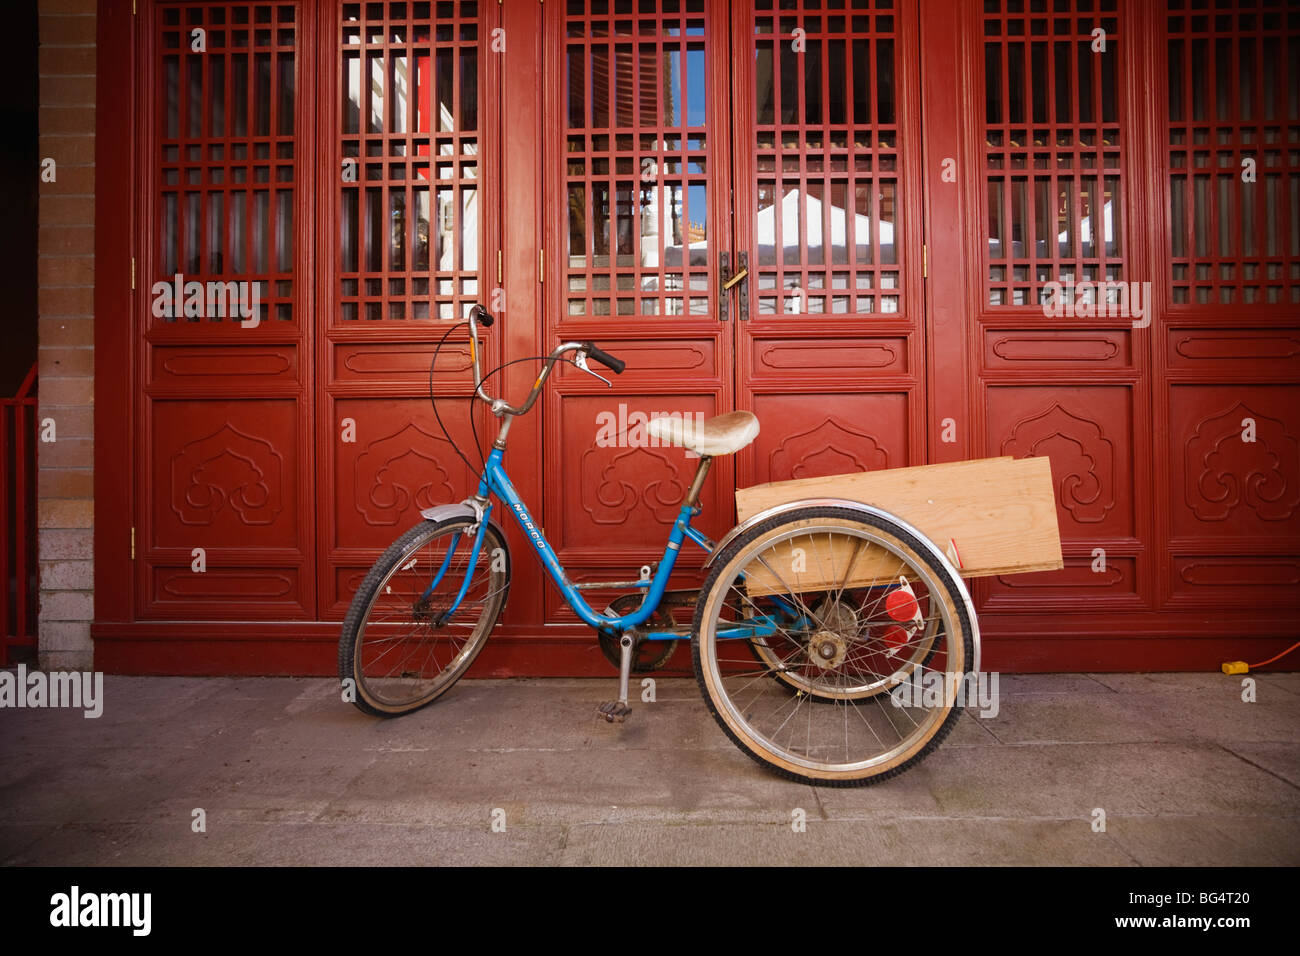 Adult tricycle, International Buddhist Society Temple, Richmond, BC, Canada - Stock Image